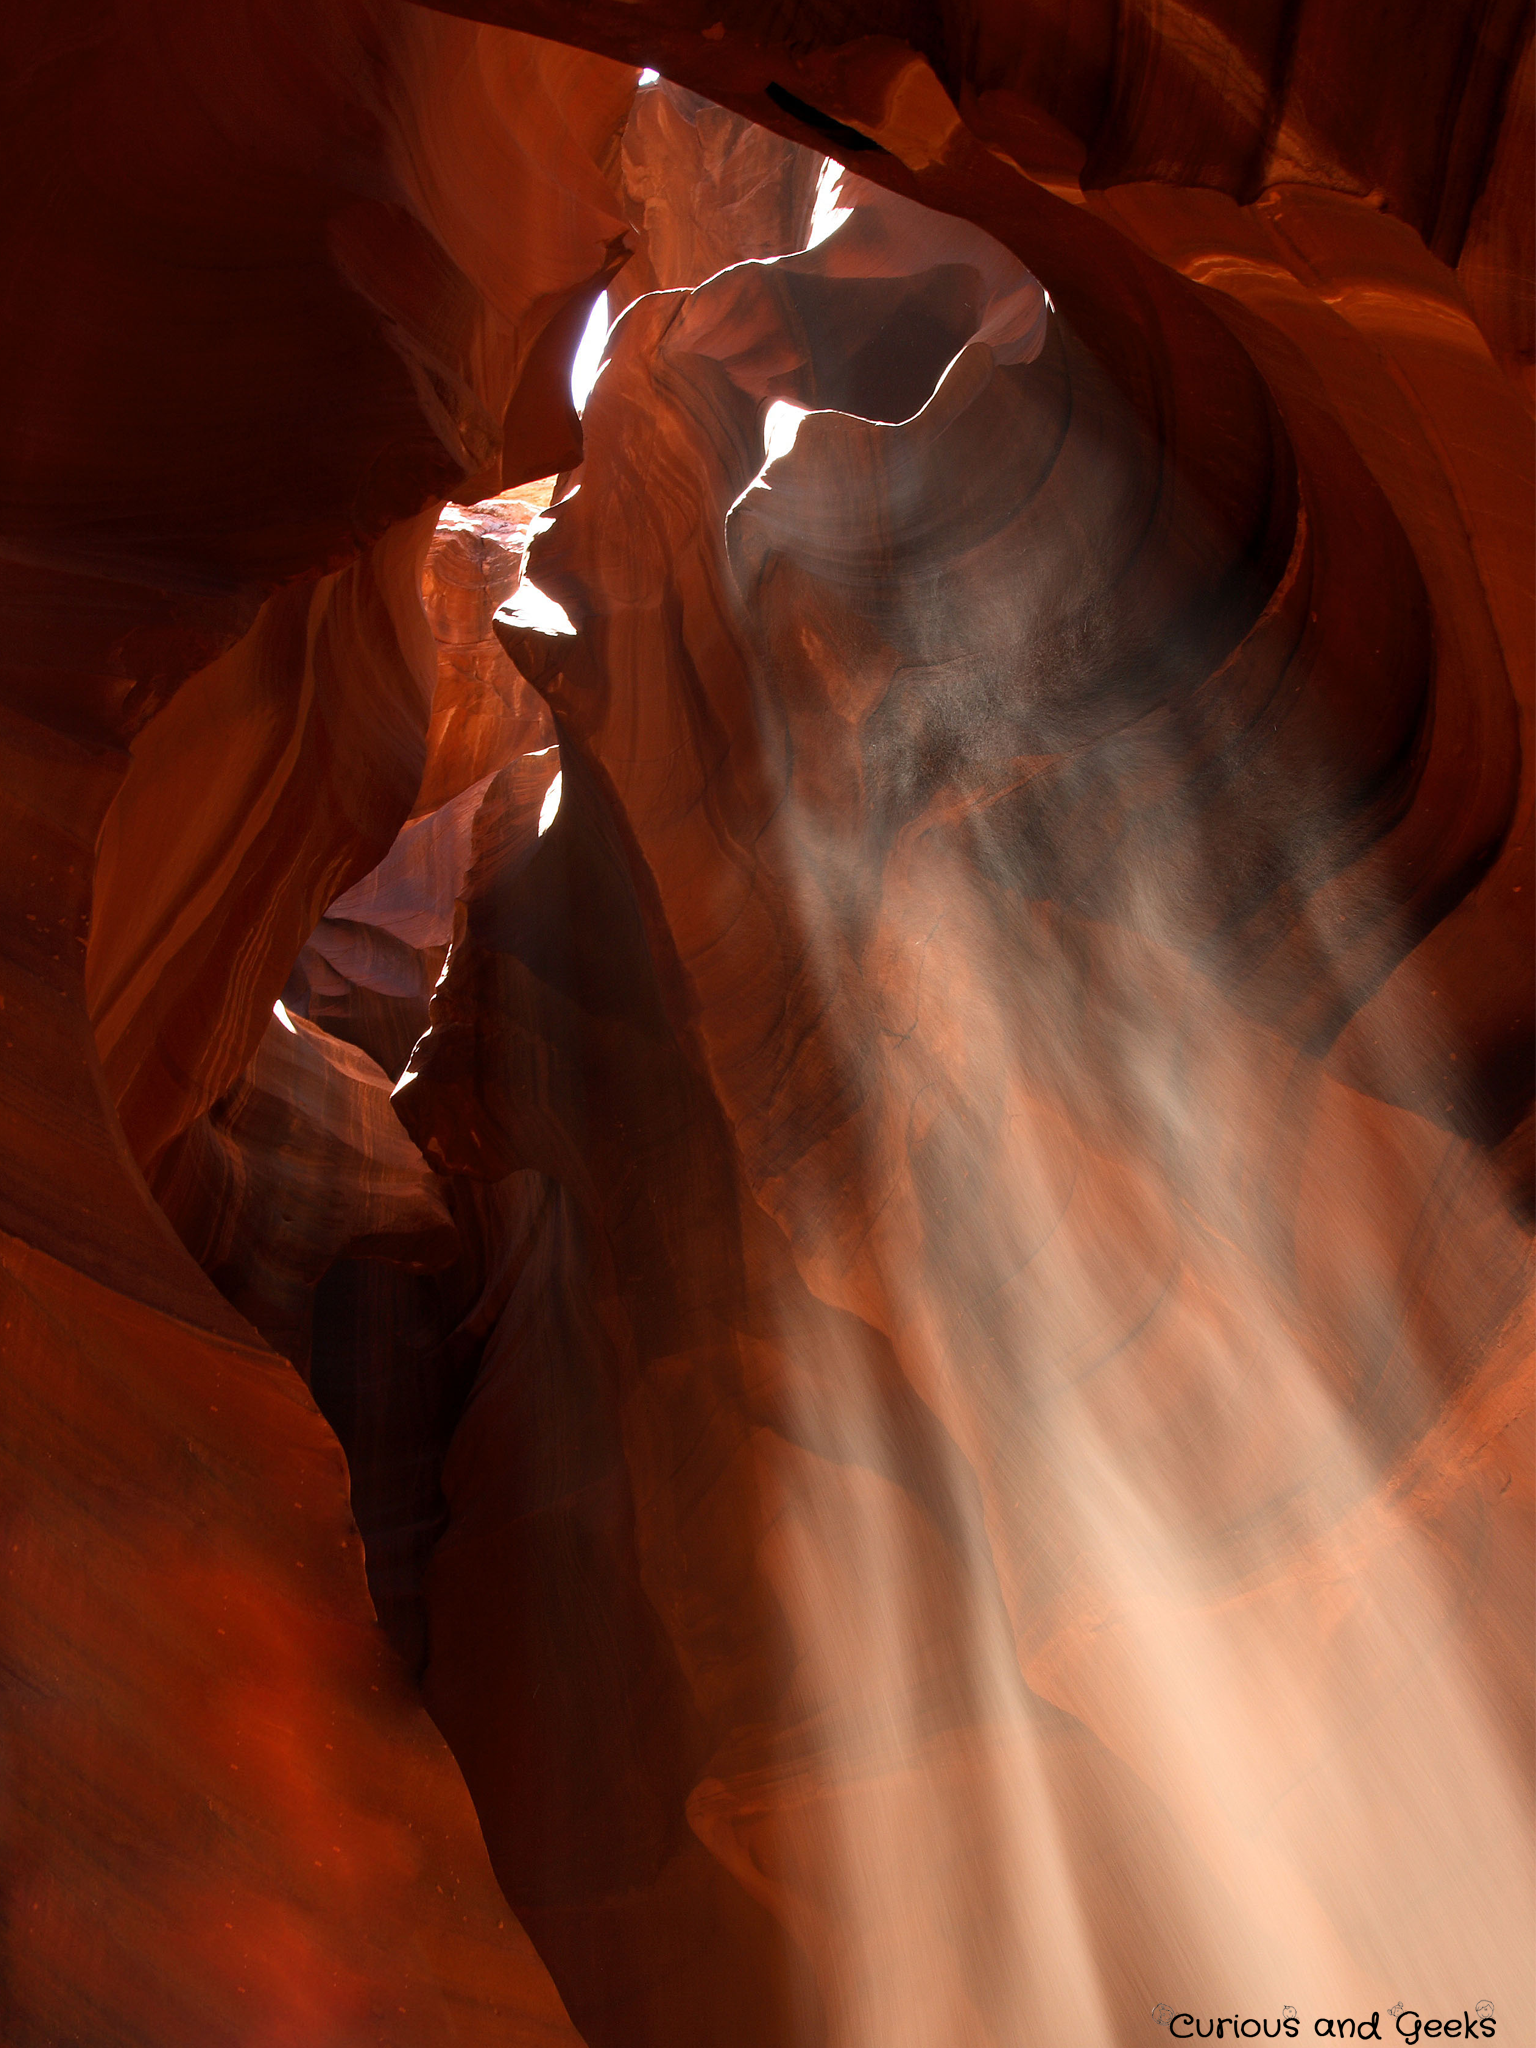 West Coast USA Road Trip Antelope Canyon - Our three-week West Coast USA Road Trip